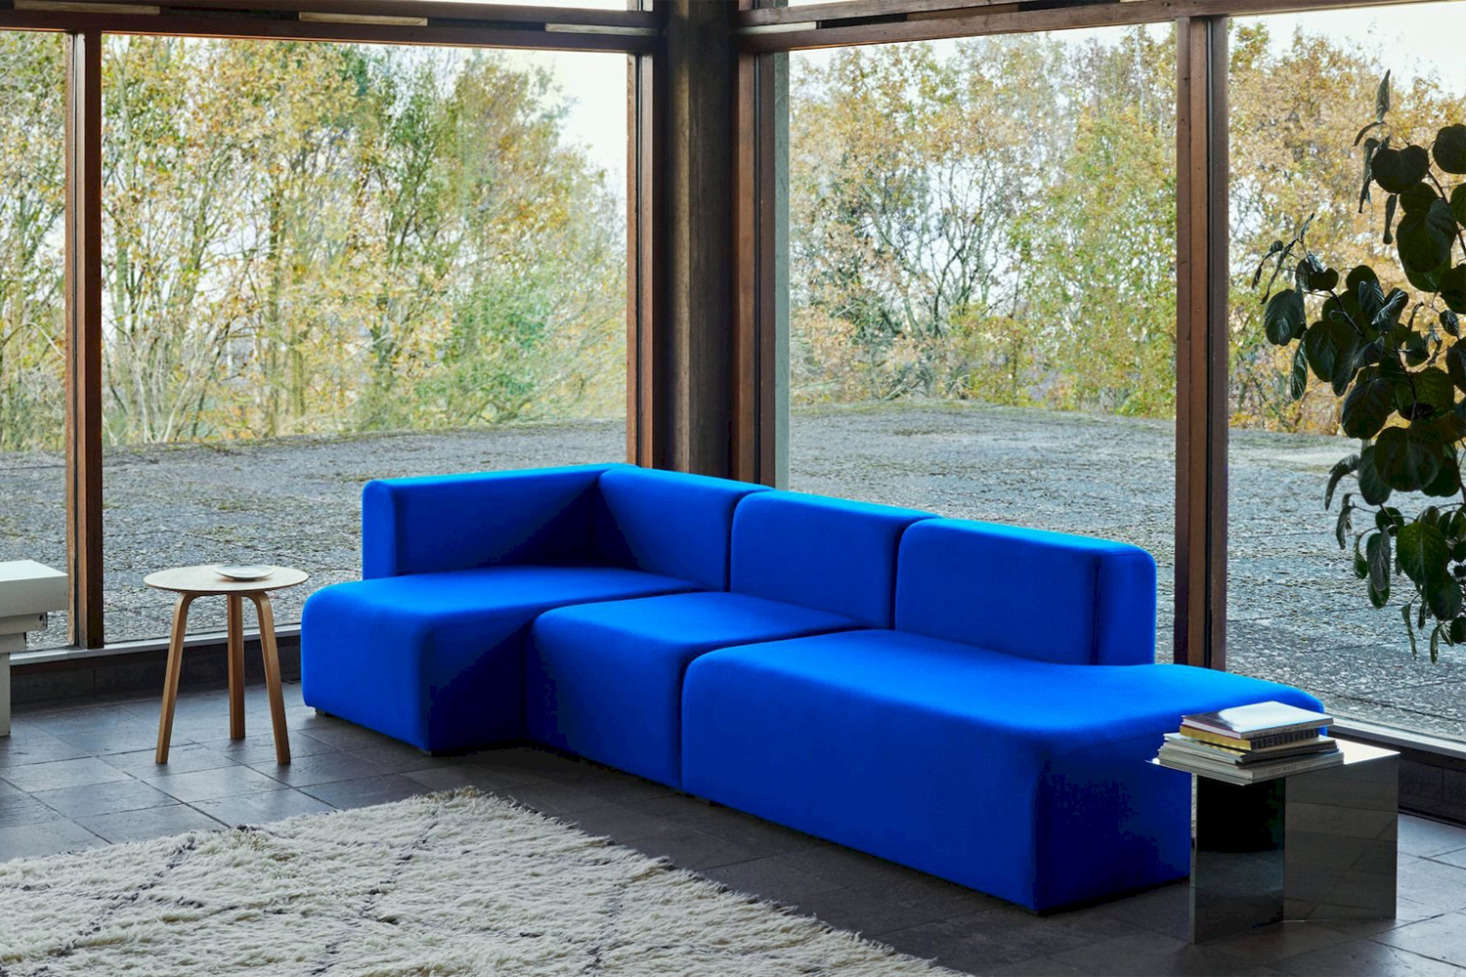 Groovy 10 Easy Pieces Modular Building Block Sectional Sofas Bralicious Painted Fabric Chair Ideas Braliciousco